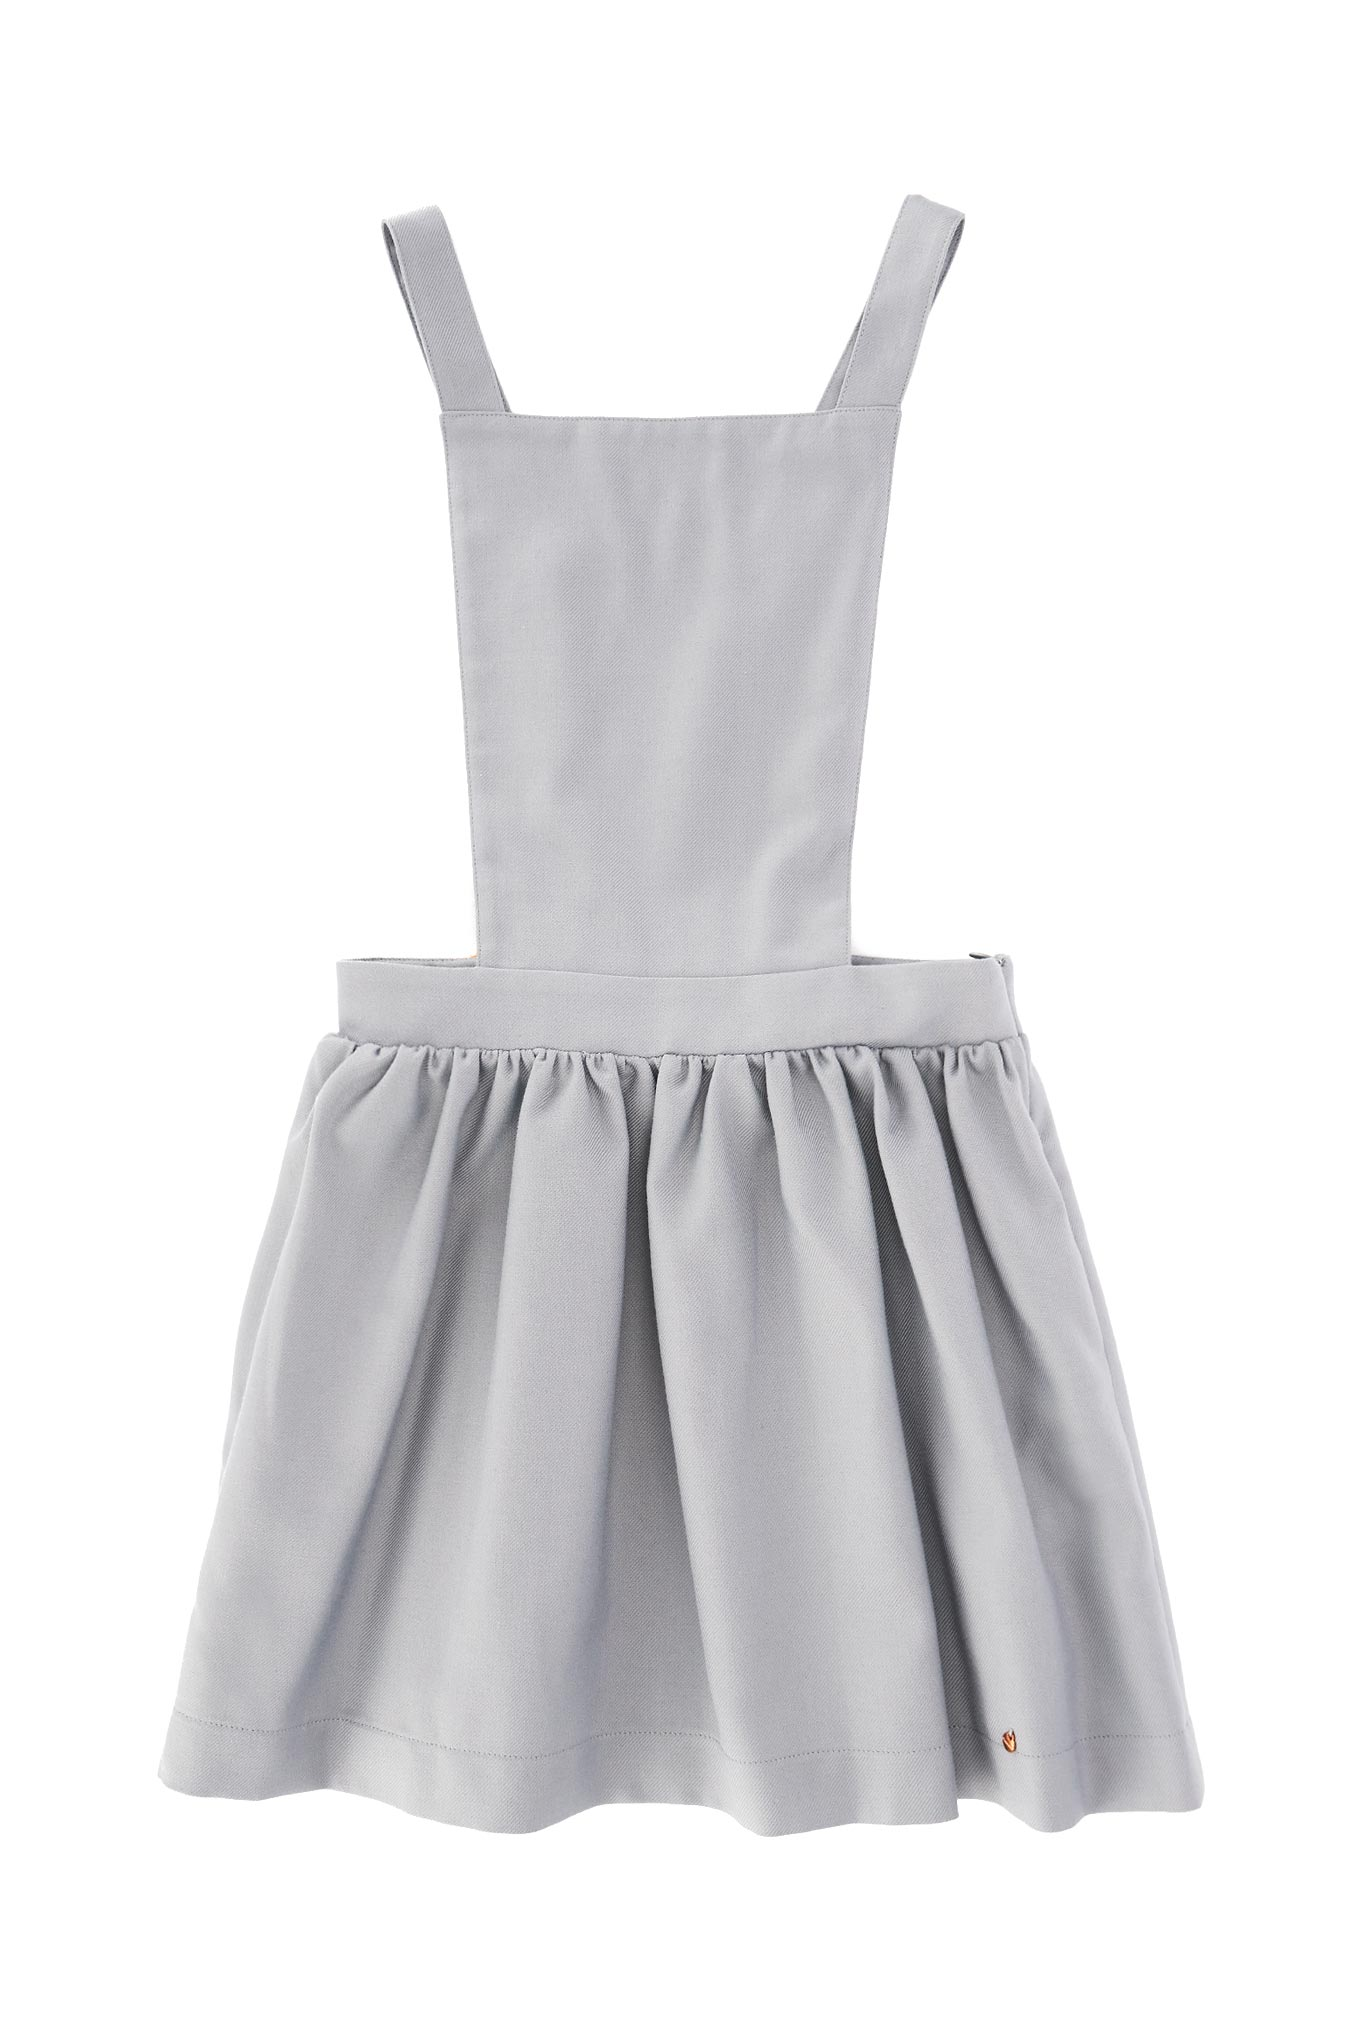 Skirt Light Grey Fantasy Girl